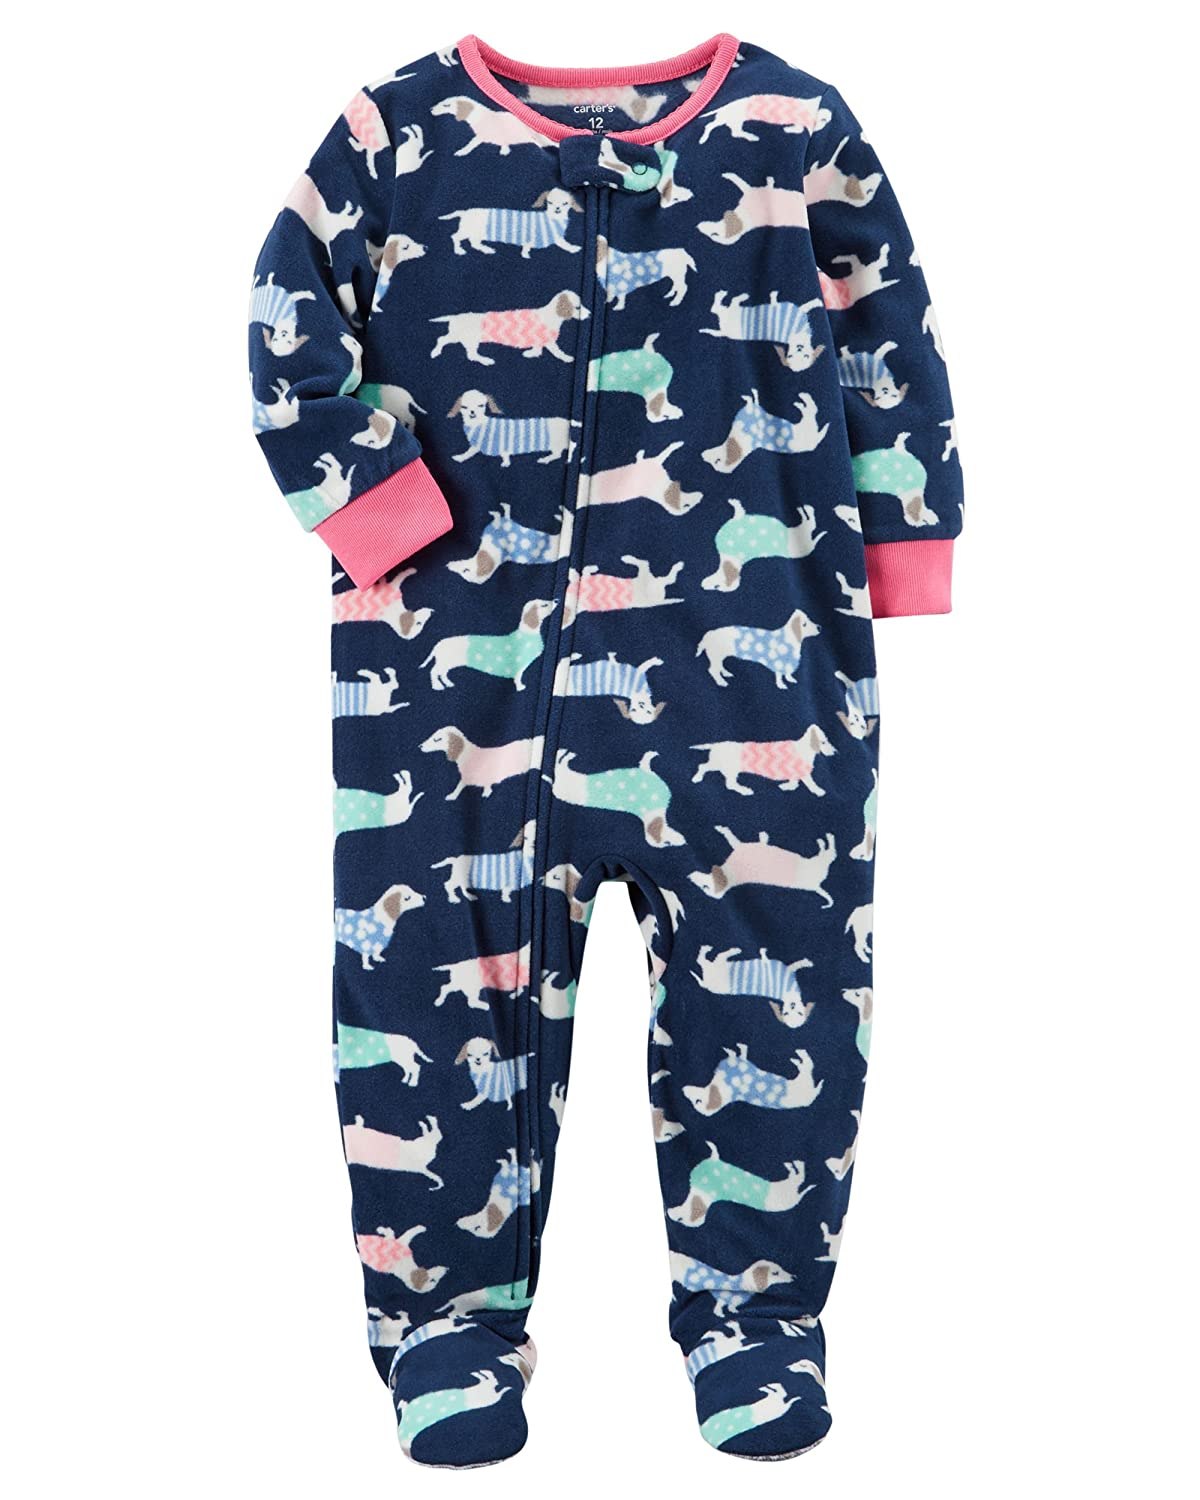 Carters Big Girls Footed Microfleece Pjs Sleeper Pajamas